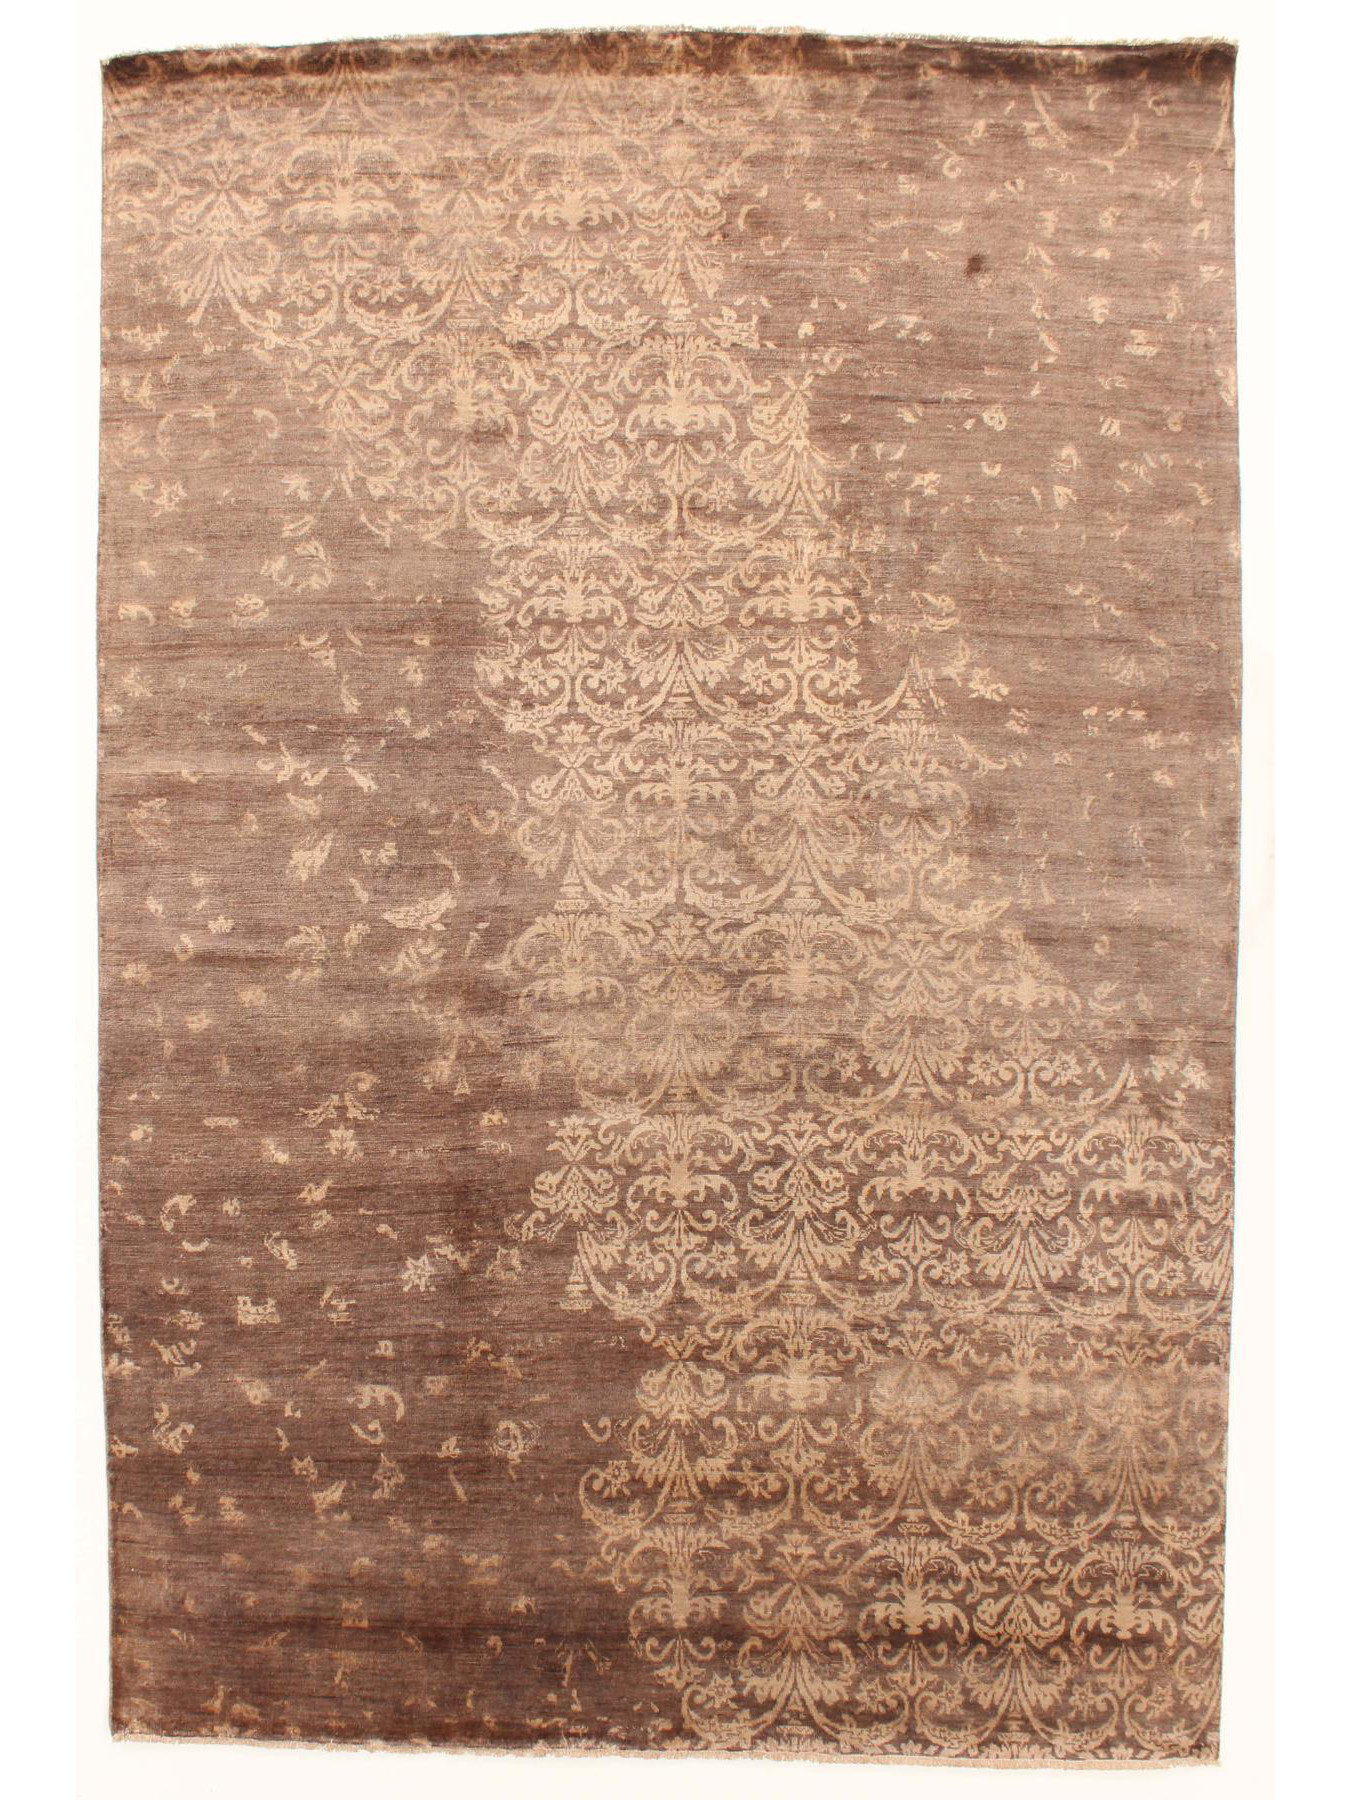 Luxury tapijten - Damask-AL-2E B-7/B-34/Gold Outlet